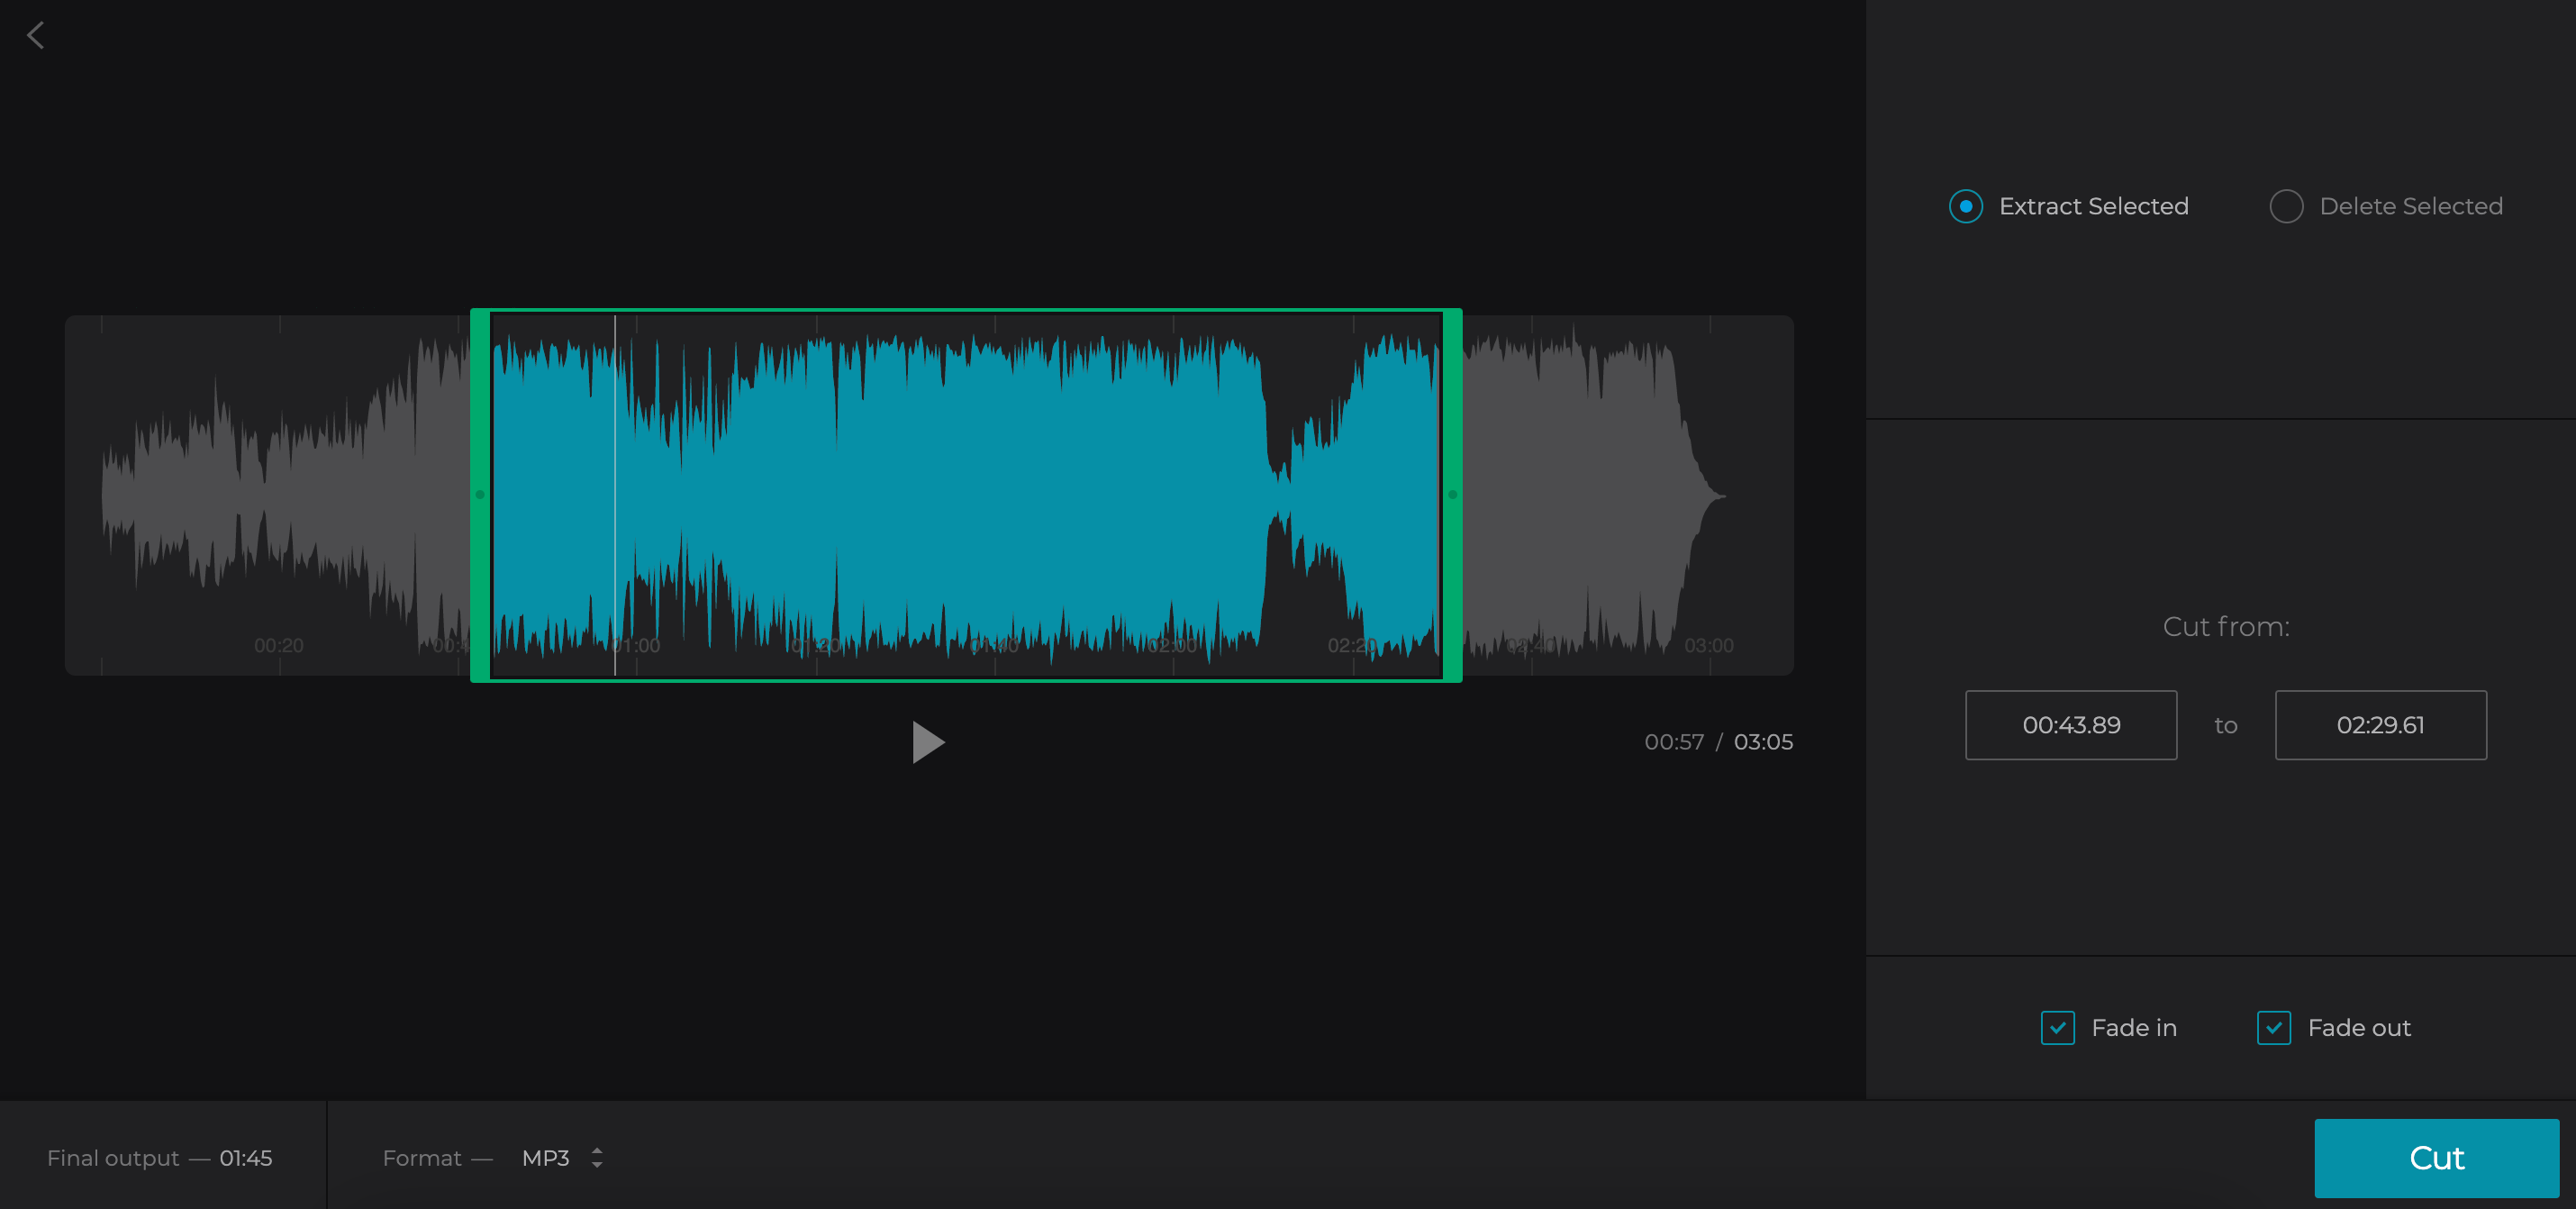 Trim audio extracted from MOV